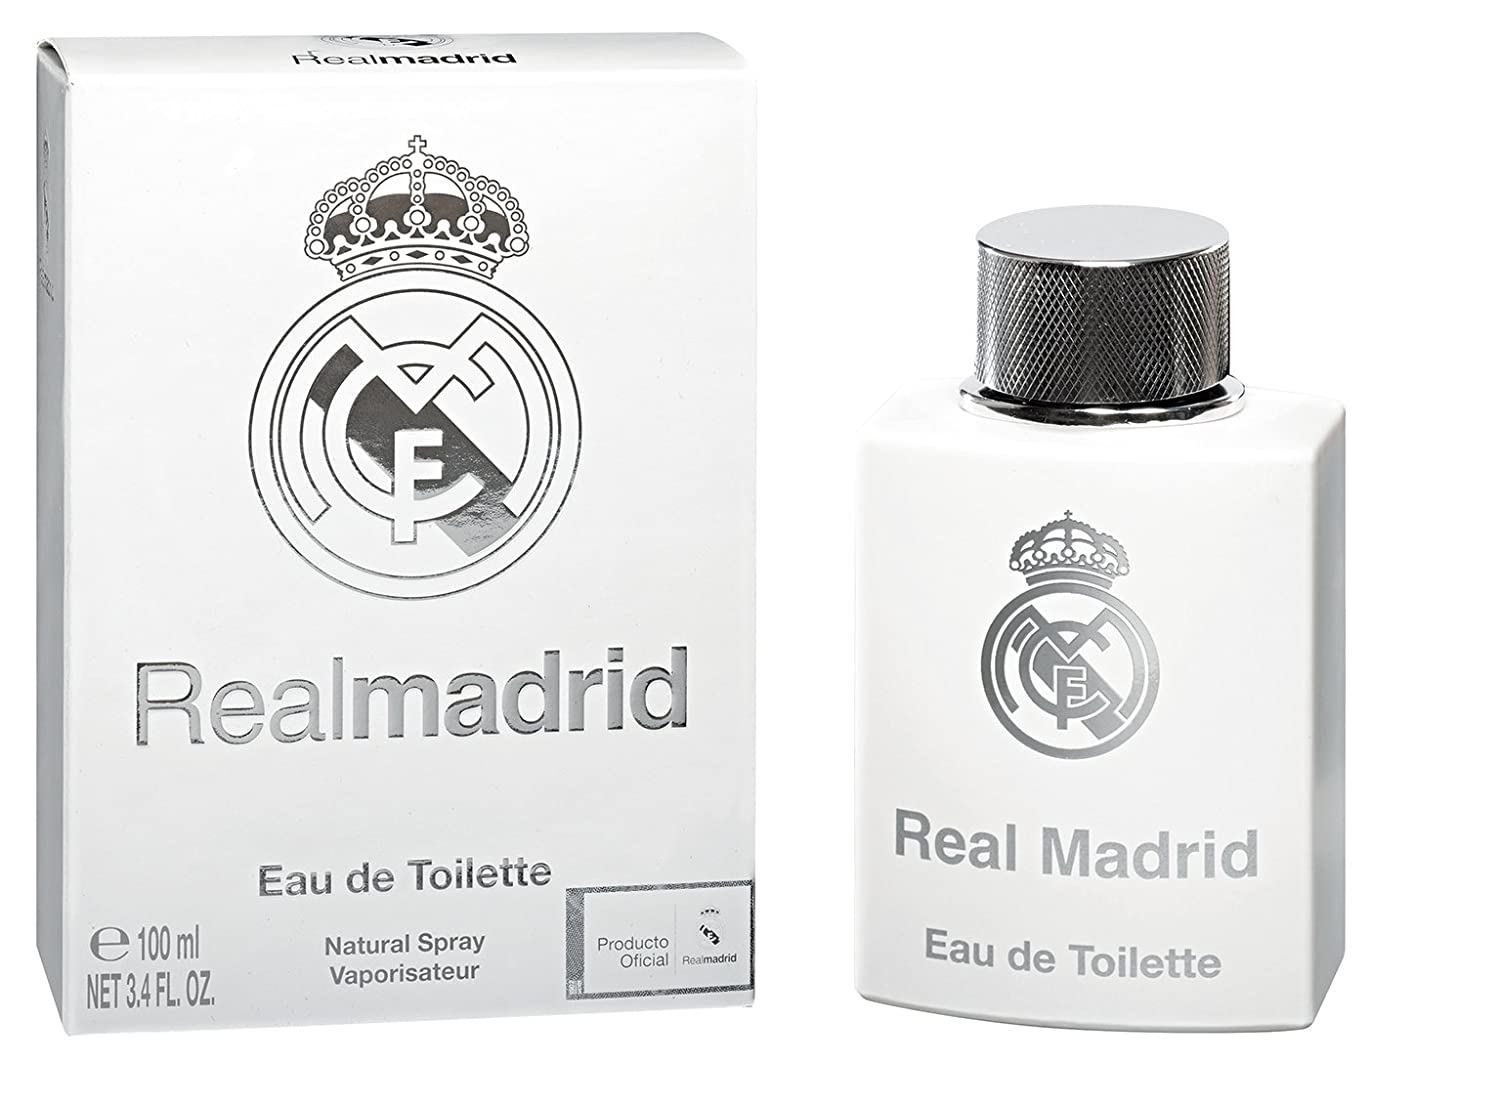 Real Madrid eau de toilette 100ml 52777